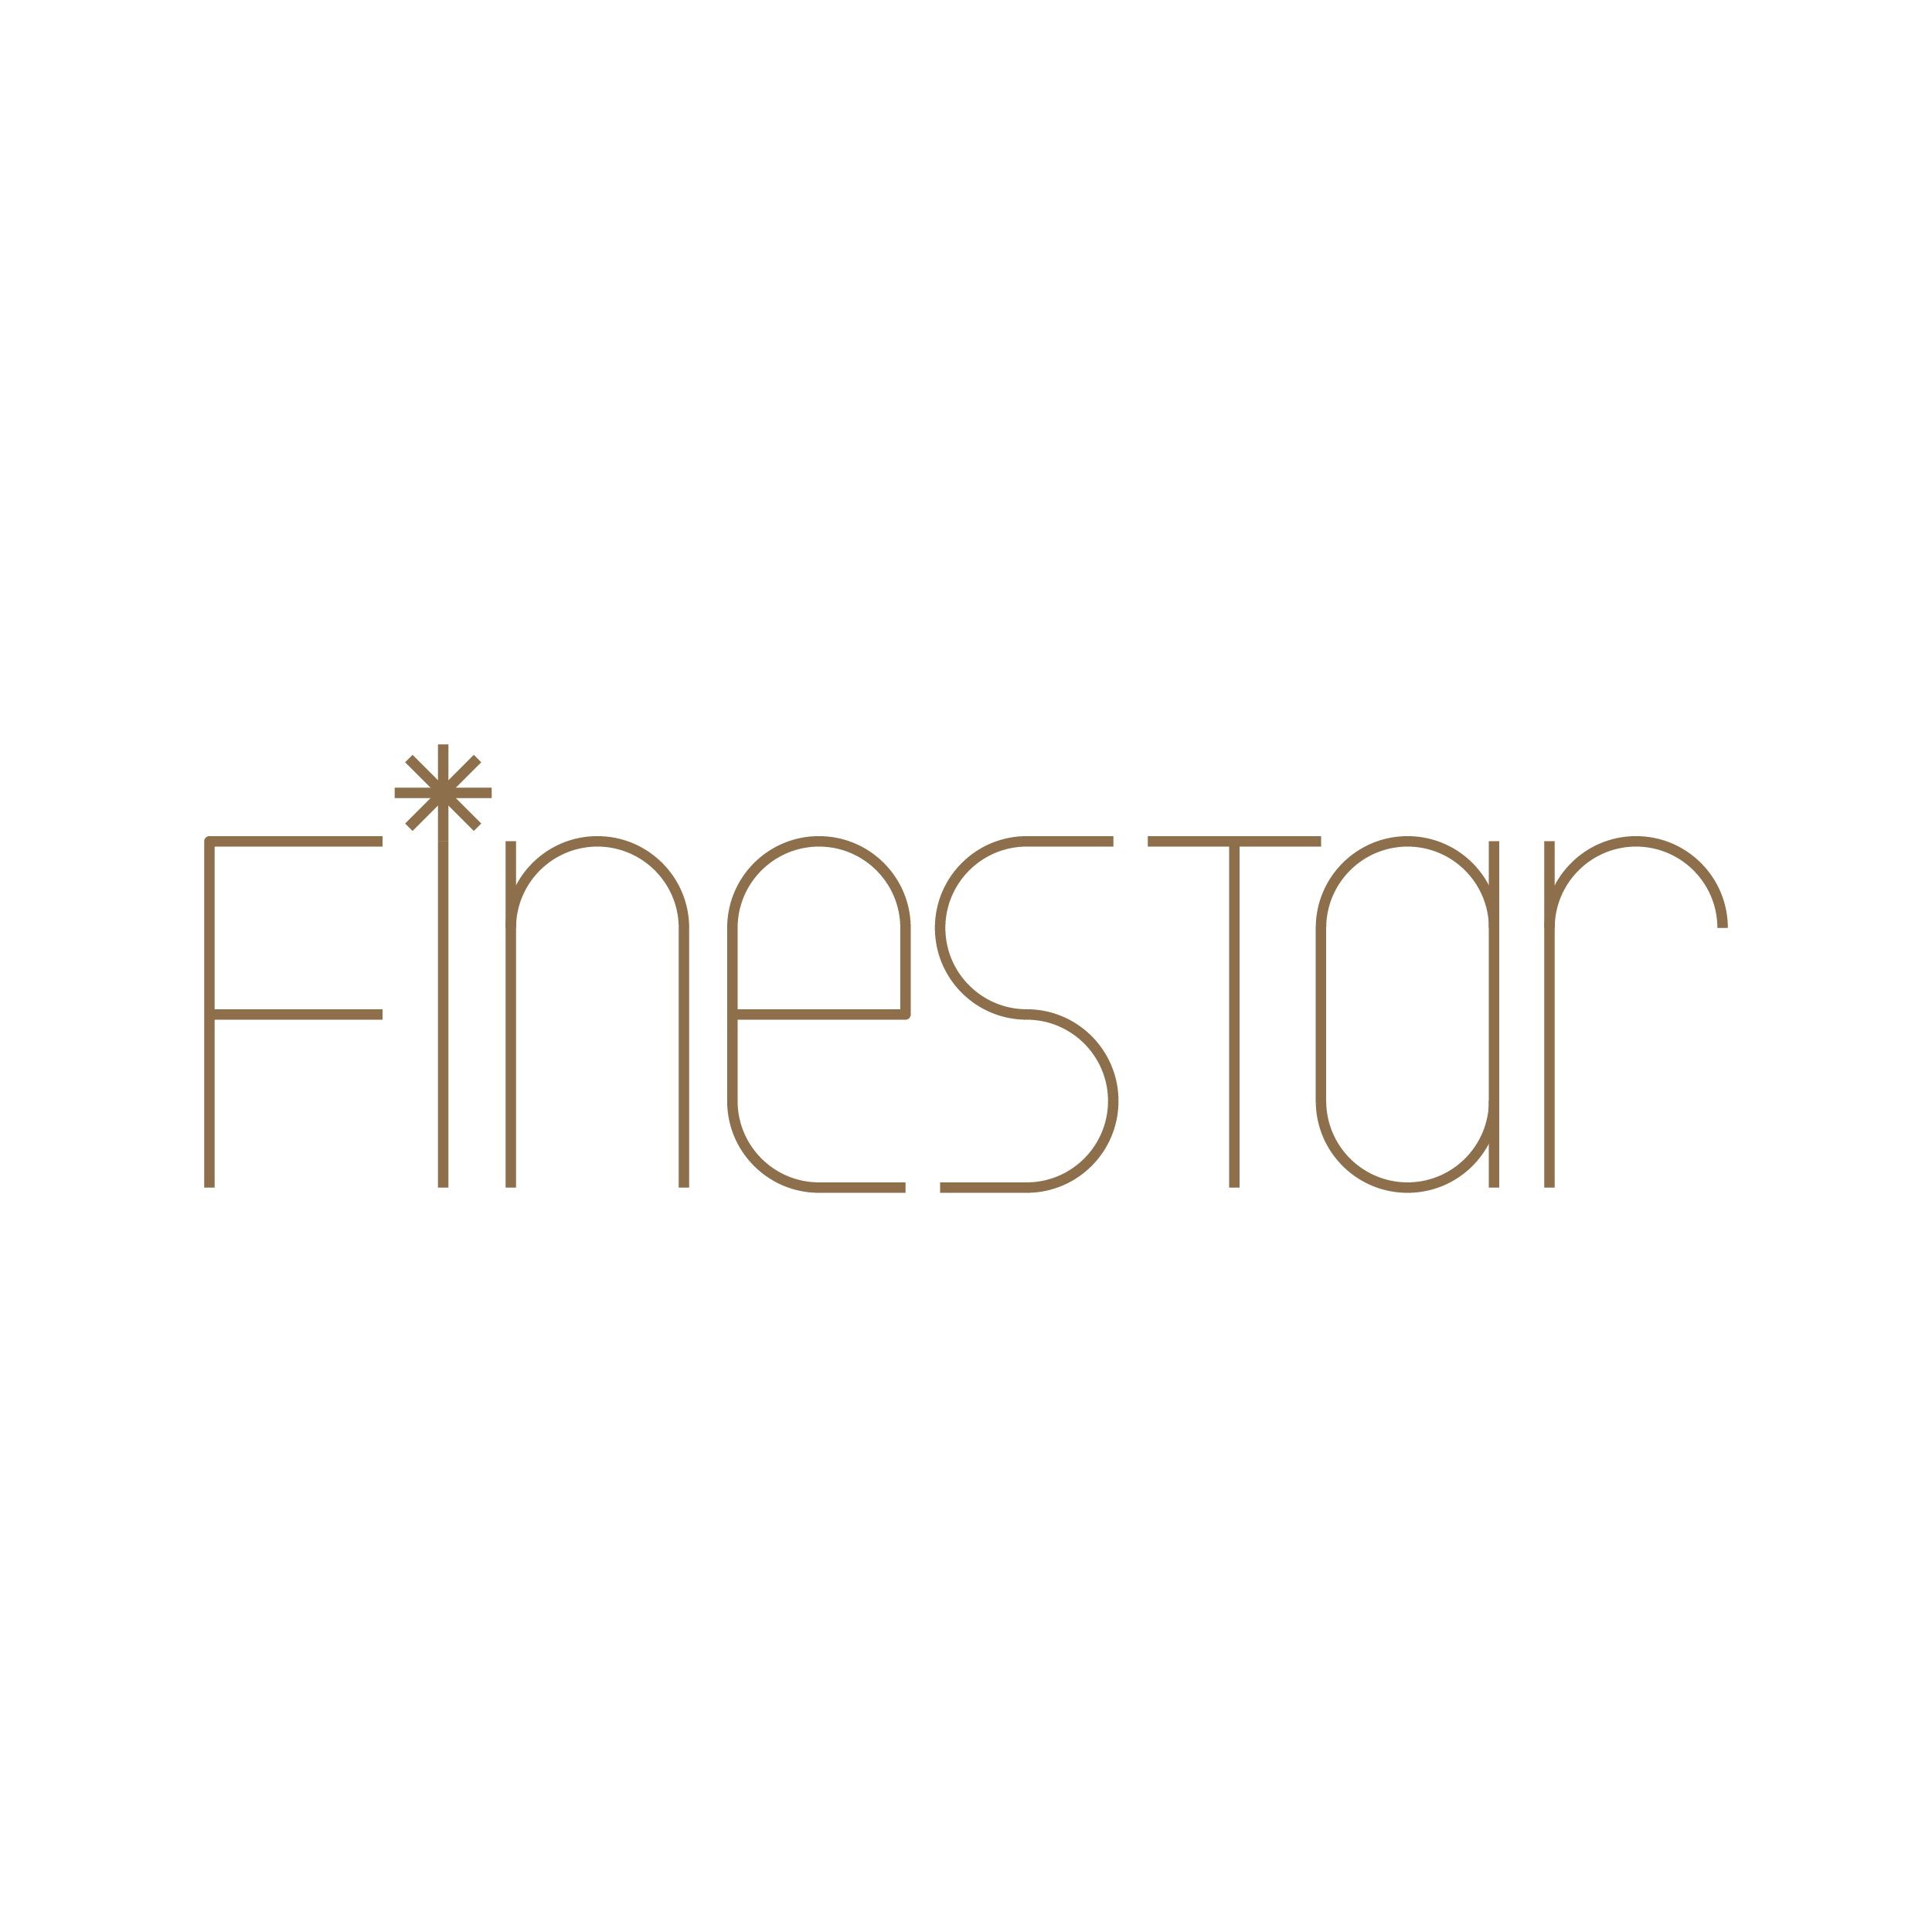 Finestar is now available in the following chain stores in Hong Kong